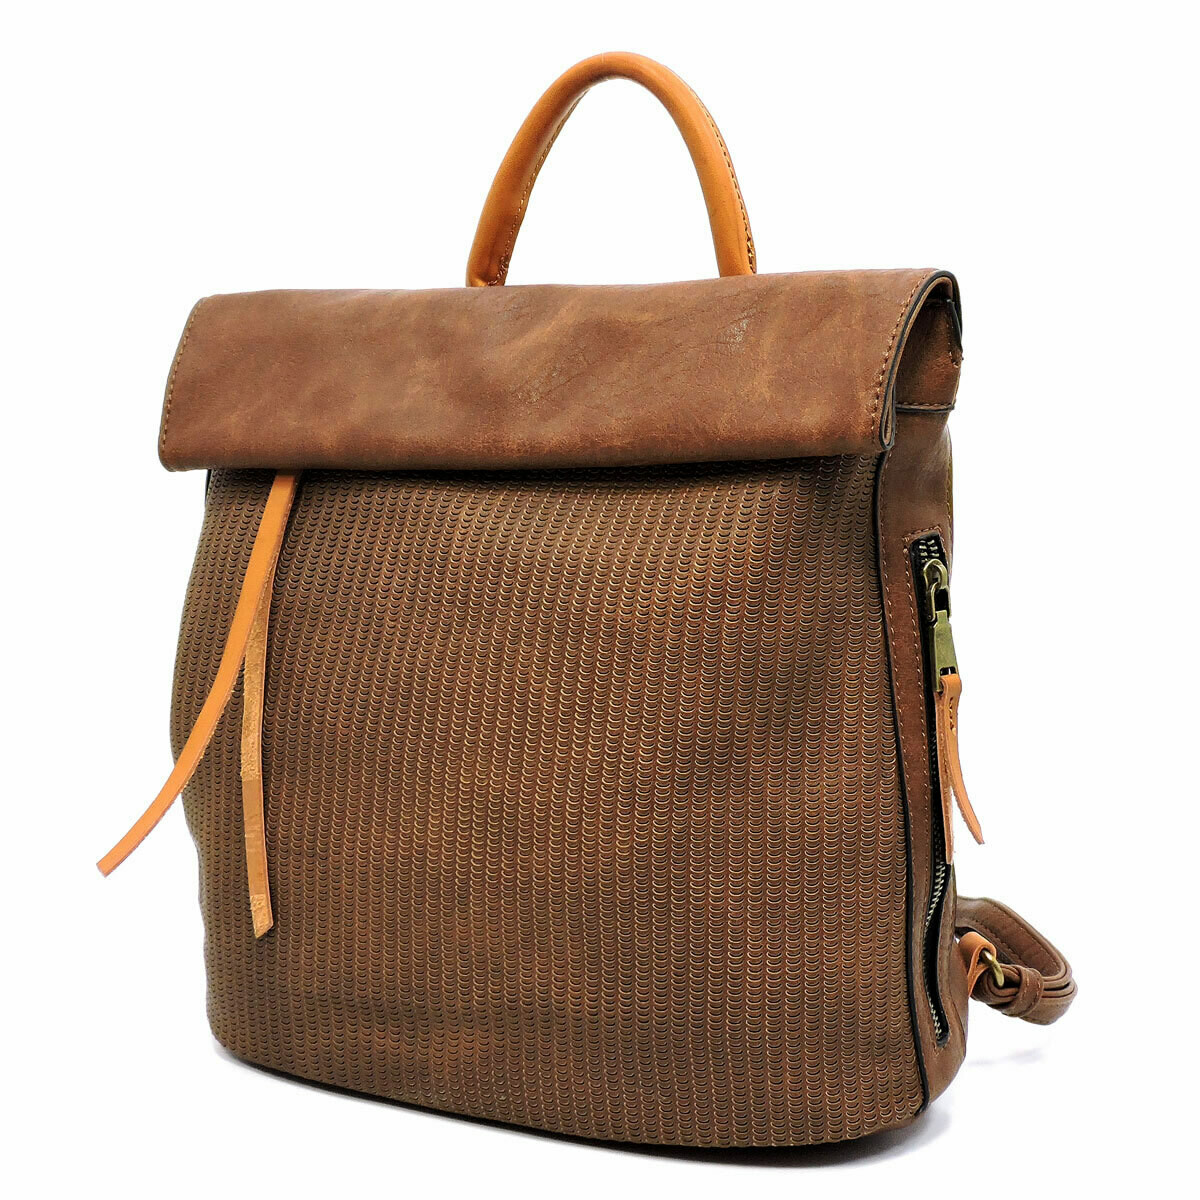 Brown Backpack with foldover top